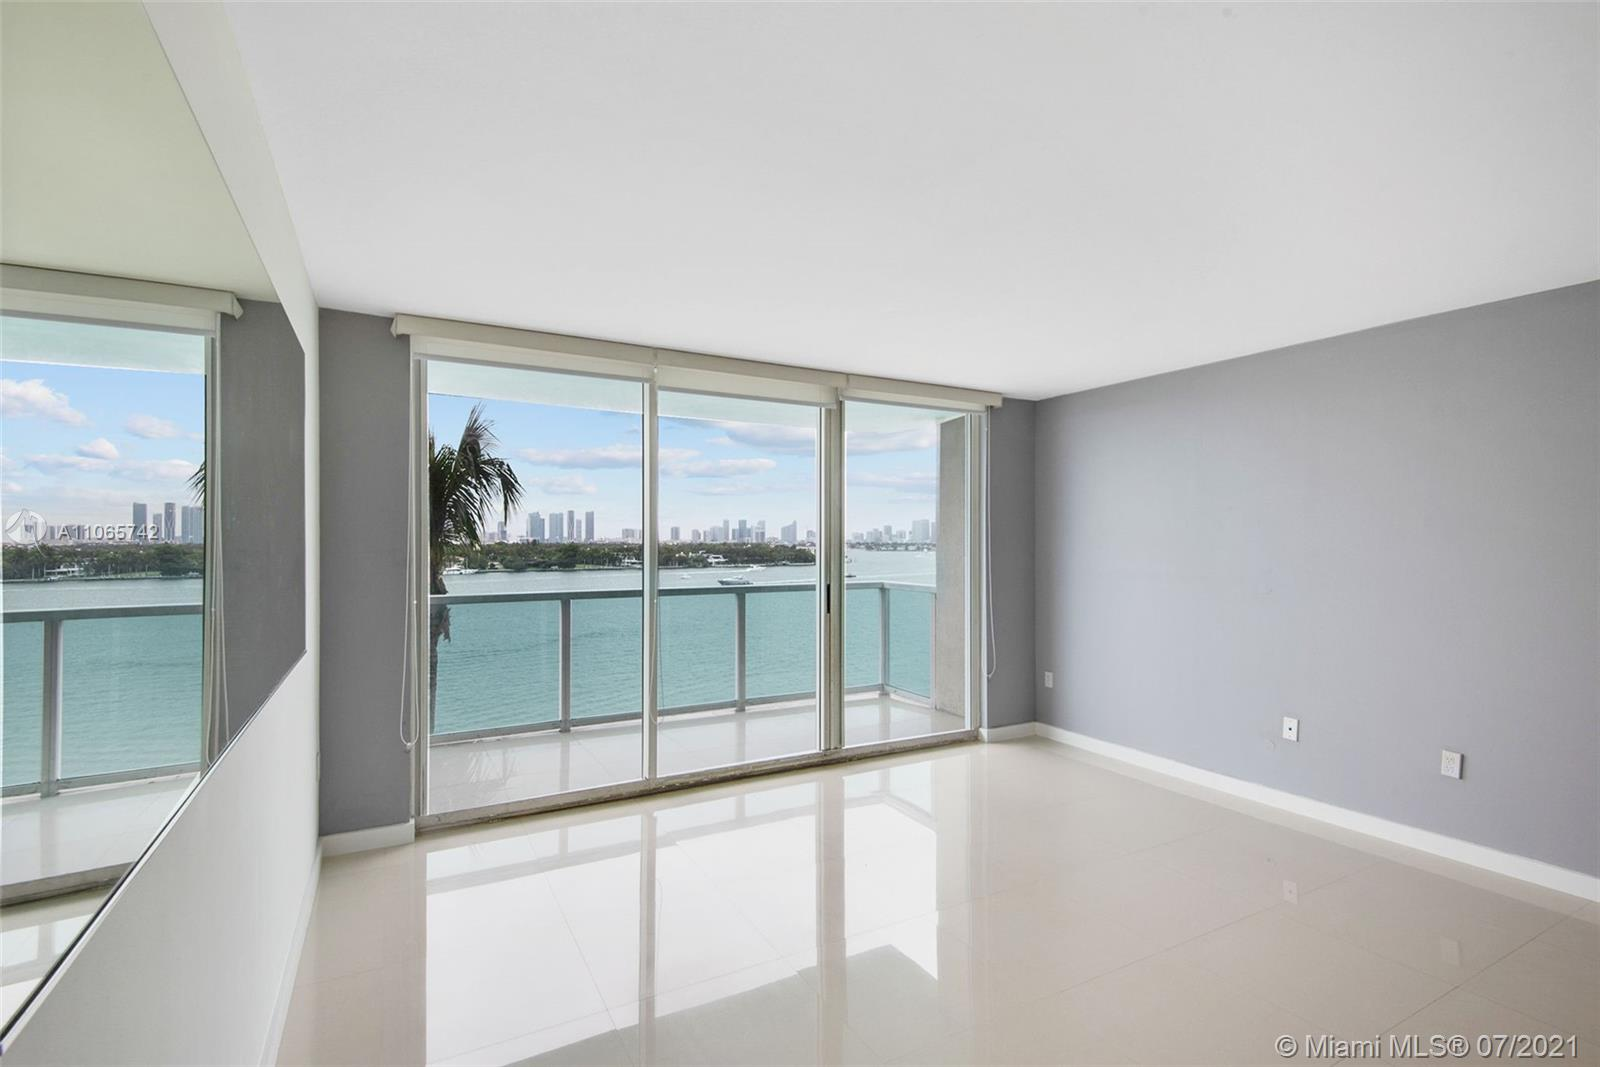 The Floridian #907 - 650 West Ave #907, Miami Beach, FL 33139